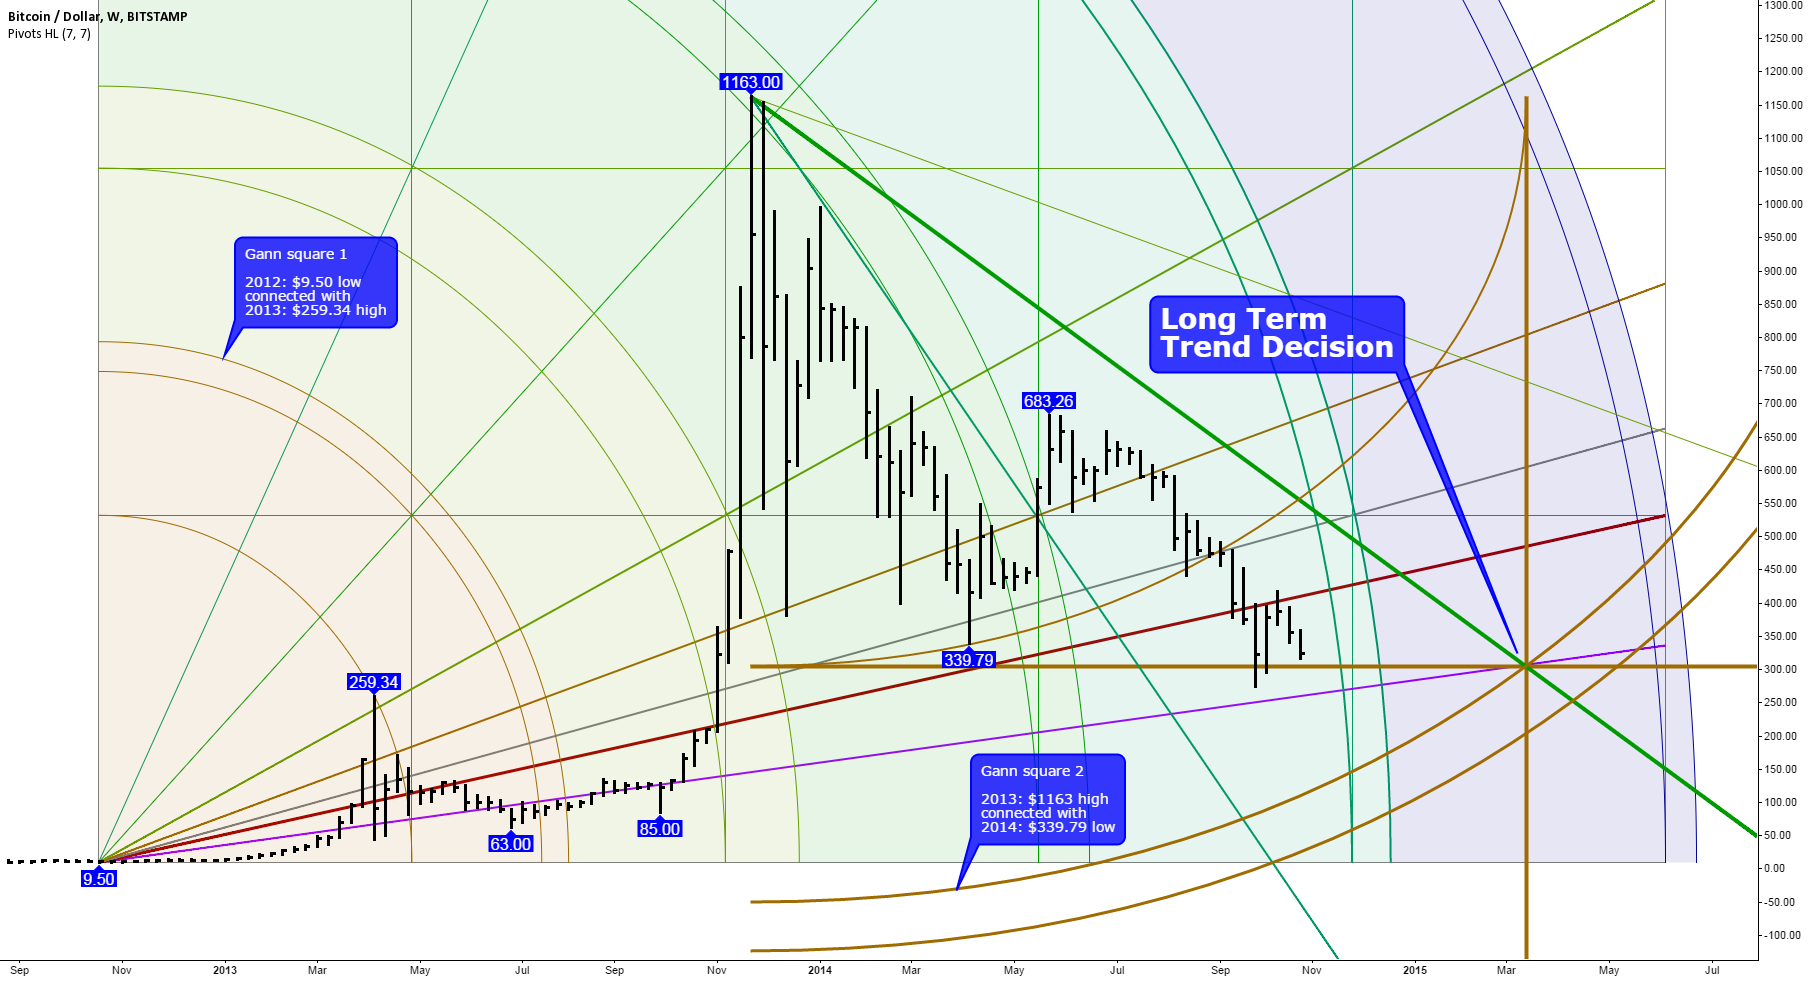 Bitcoin's Future Could Be Decided in March 2015